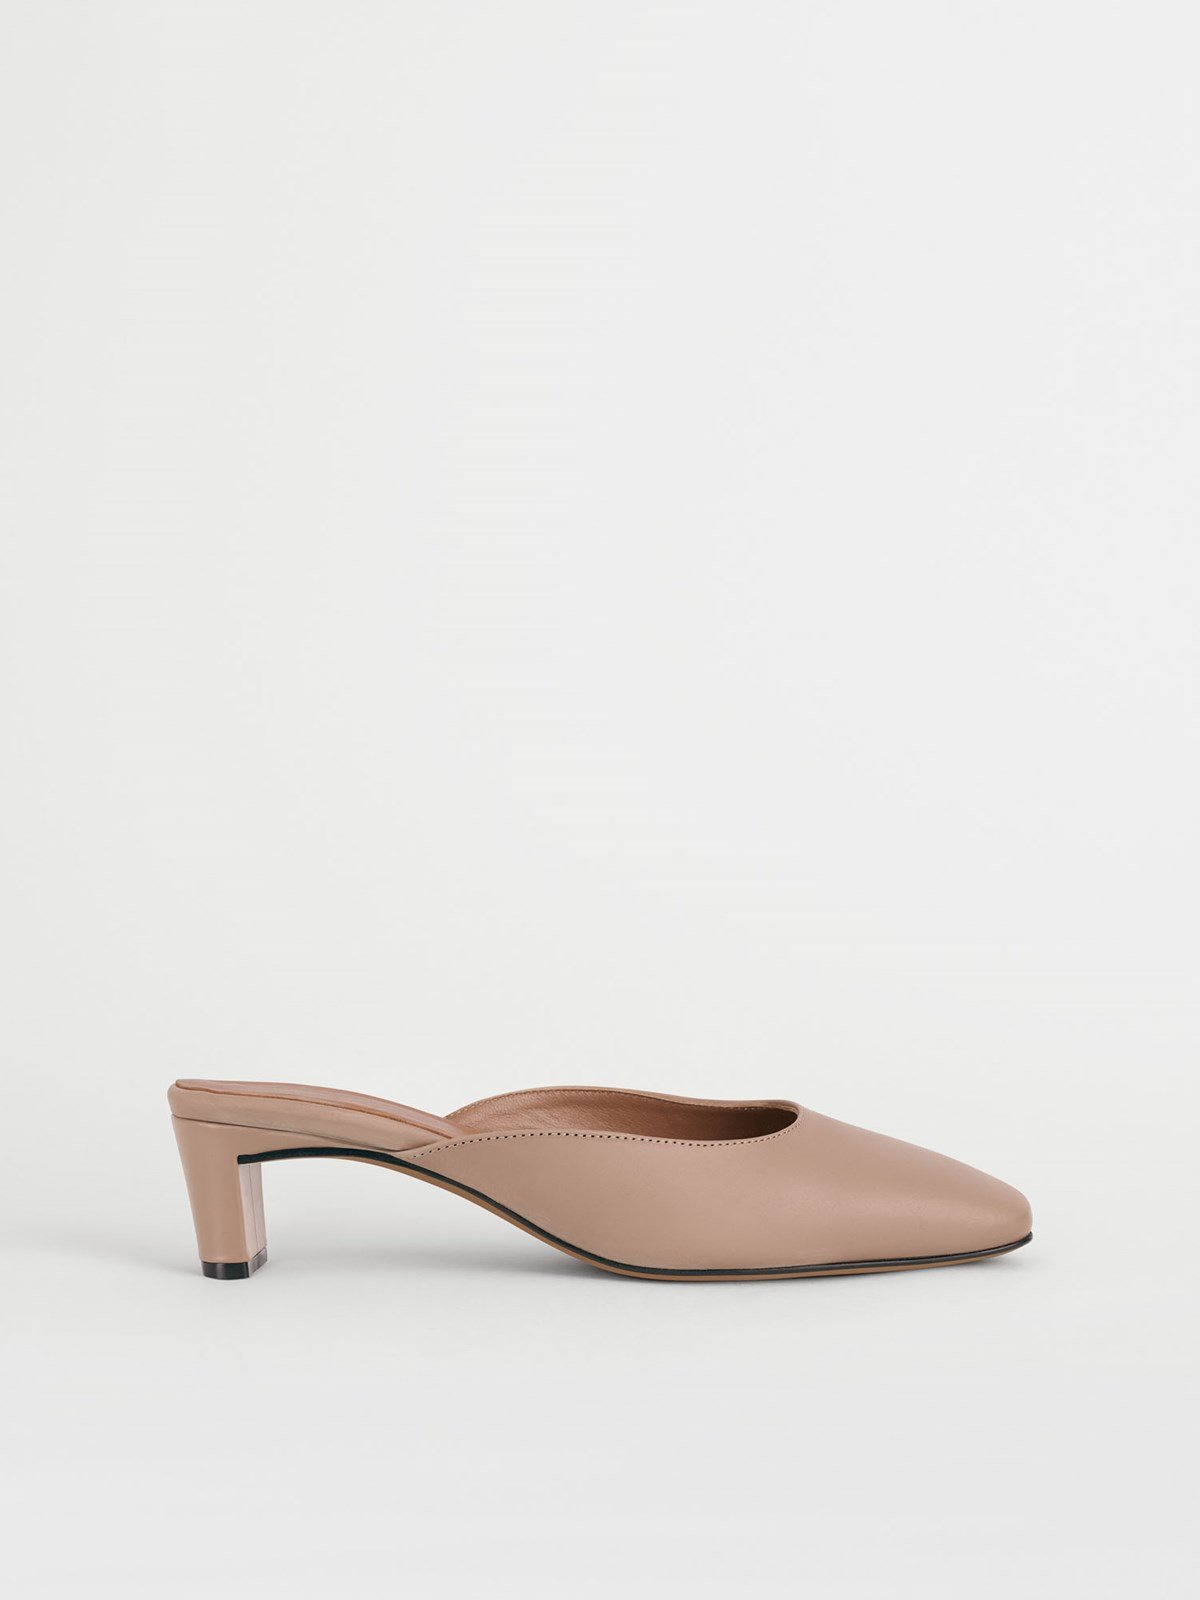 Alloro Almond Mules